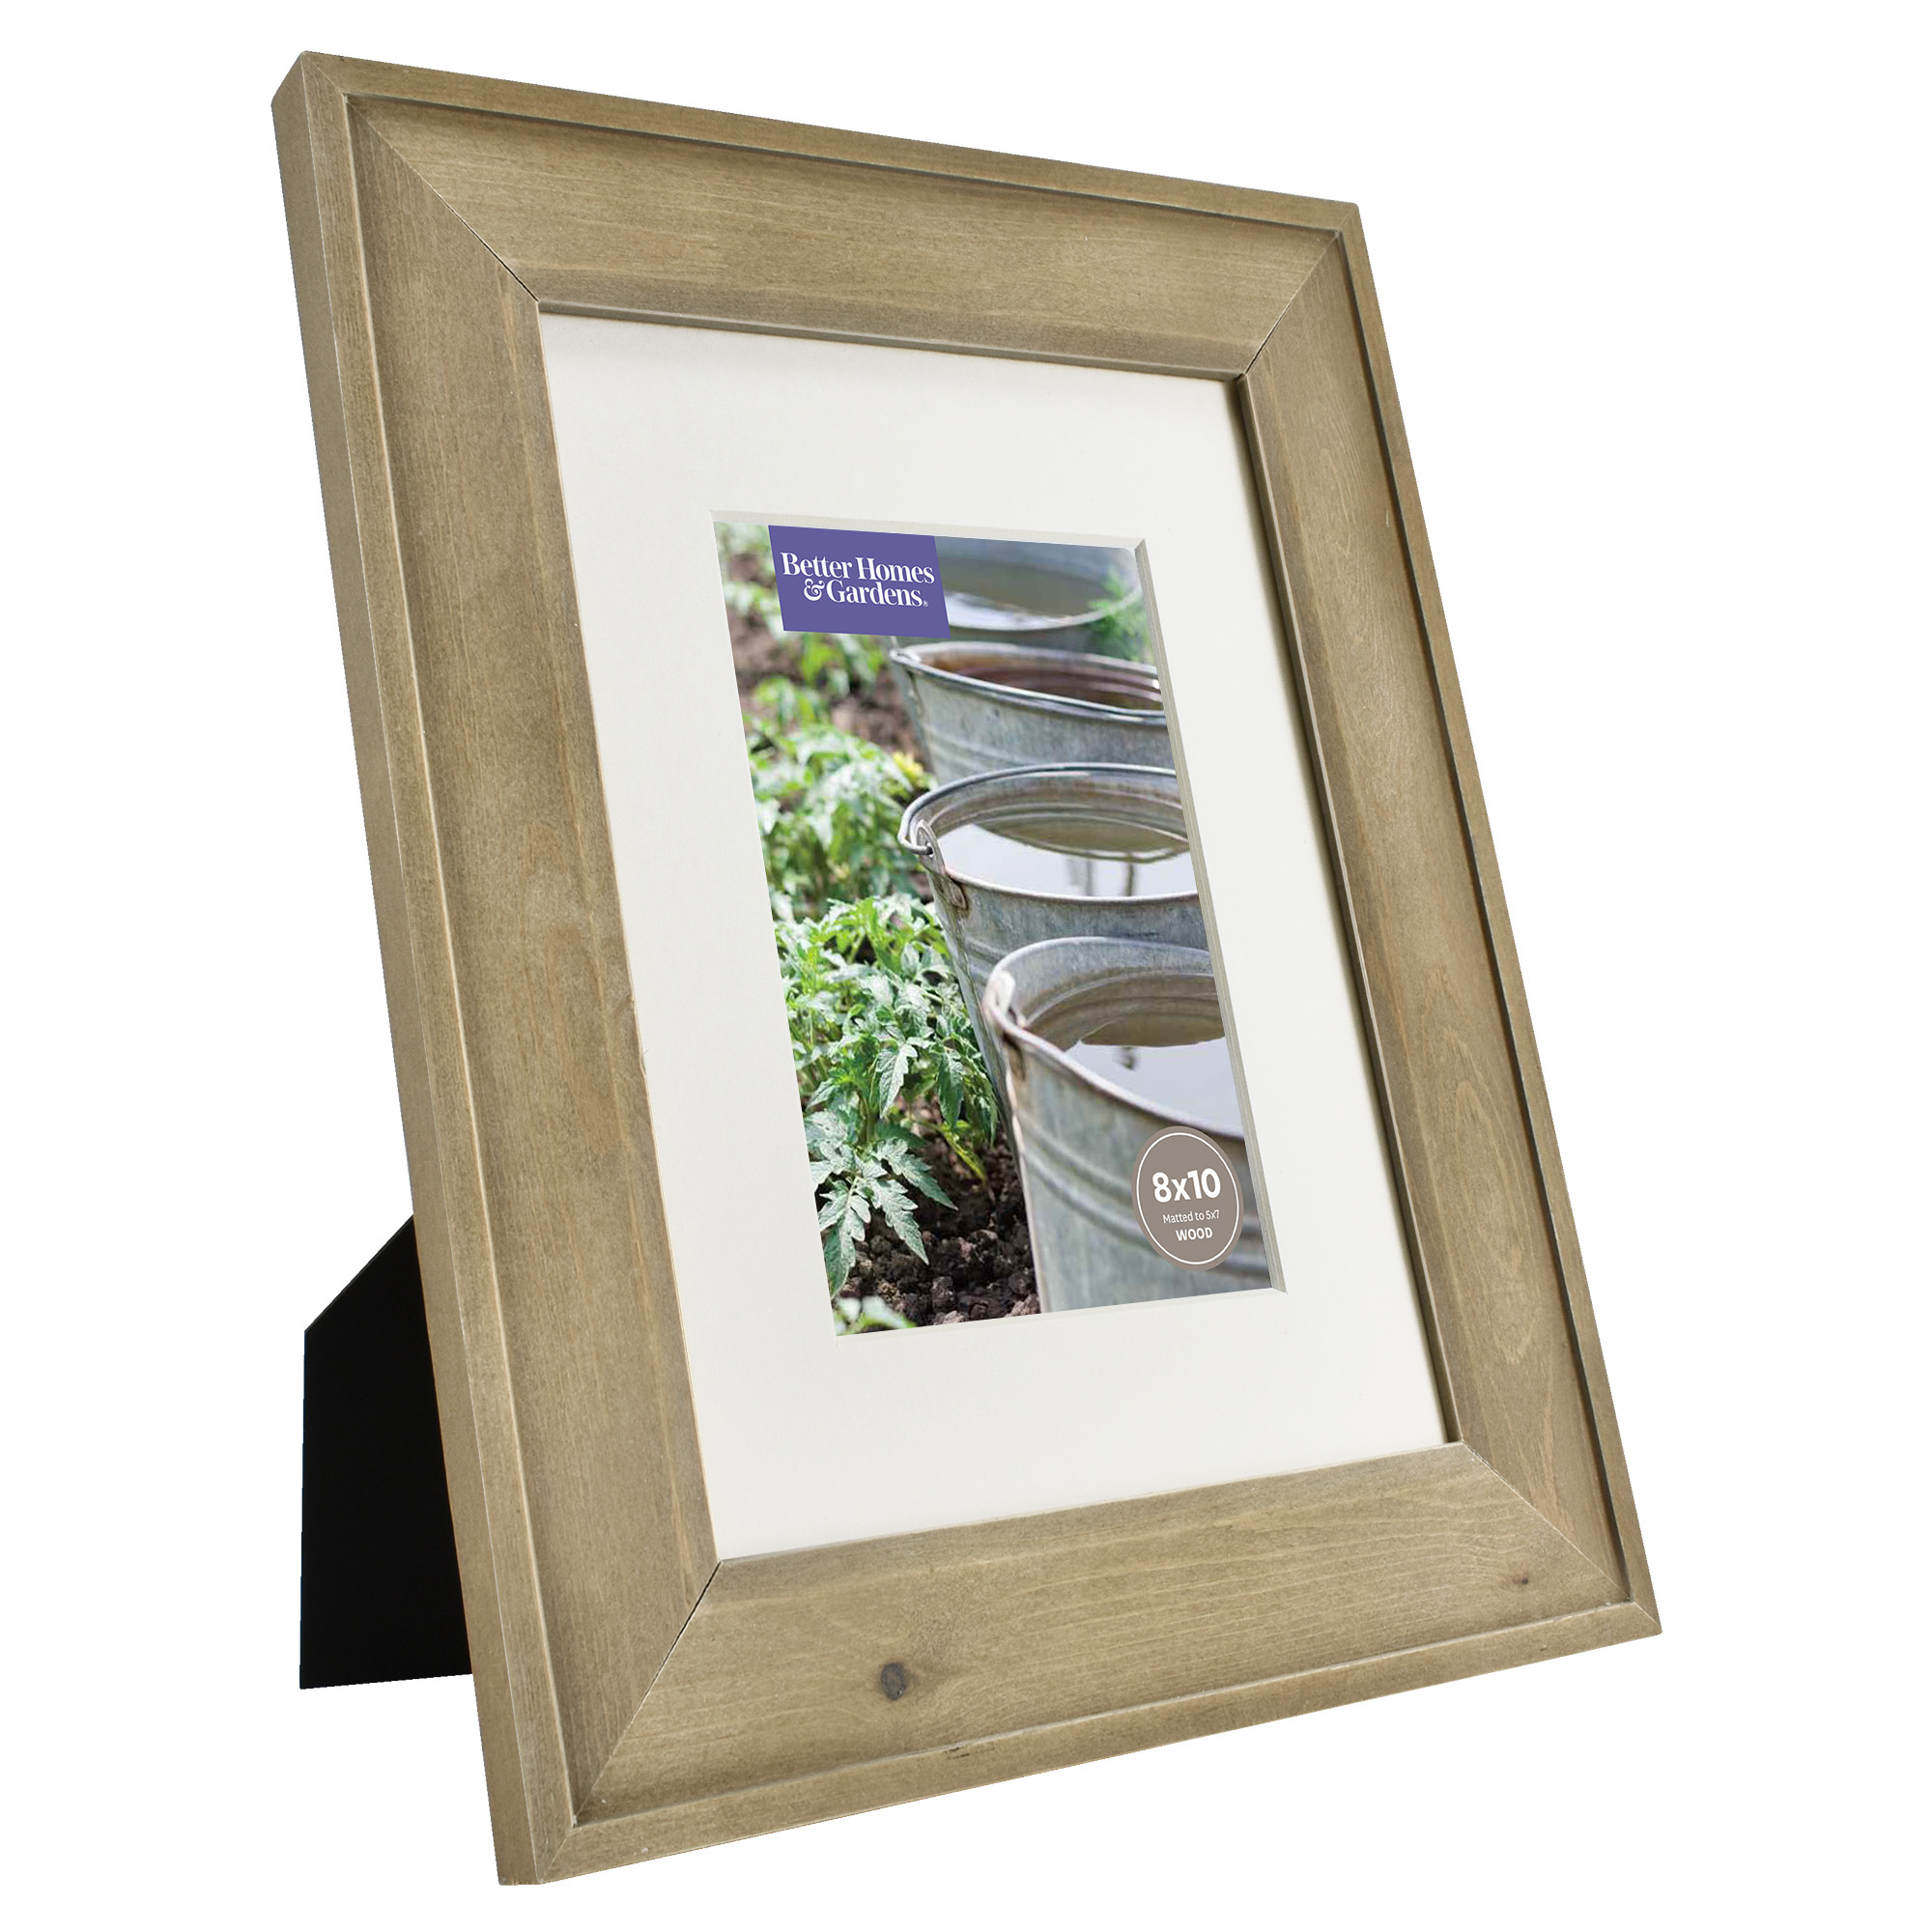 Gentil Better Homes U0026 Gardens 8x10/5x7 Rustic Wood Picture Frame, 2pk   Walmart.com